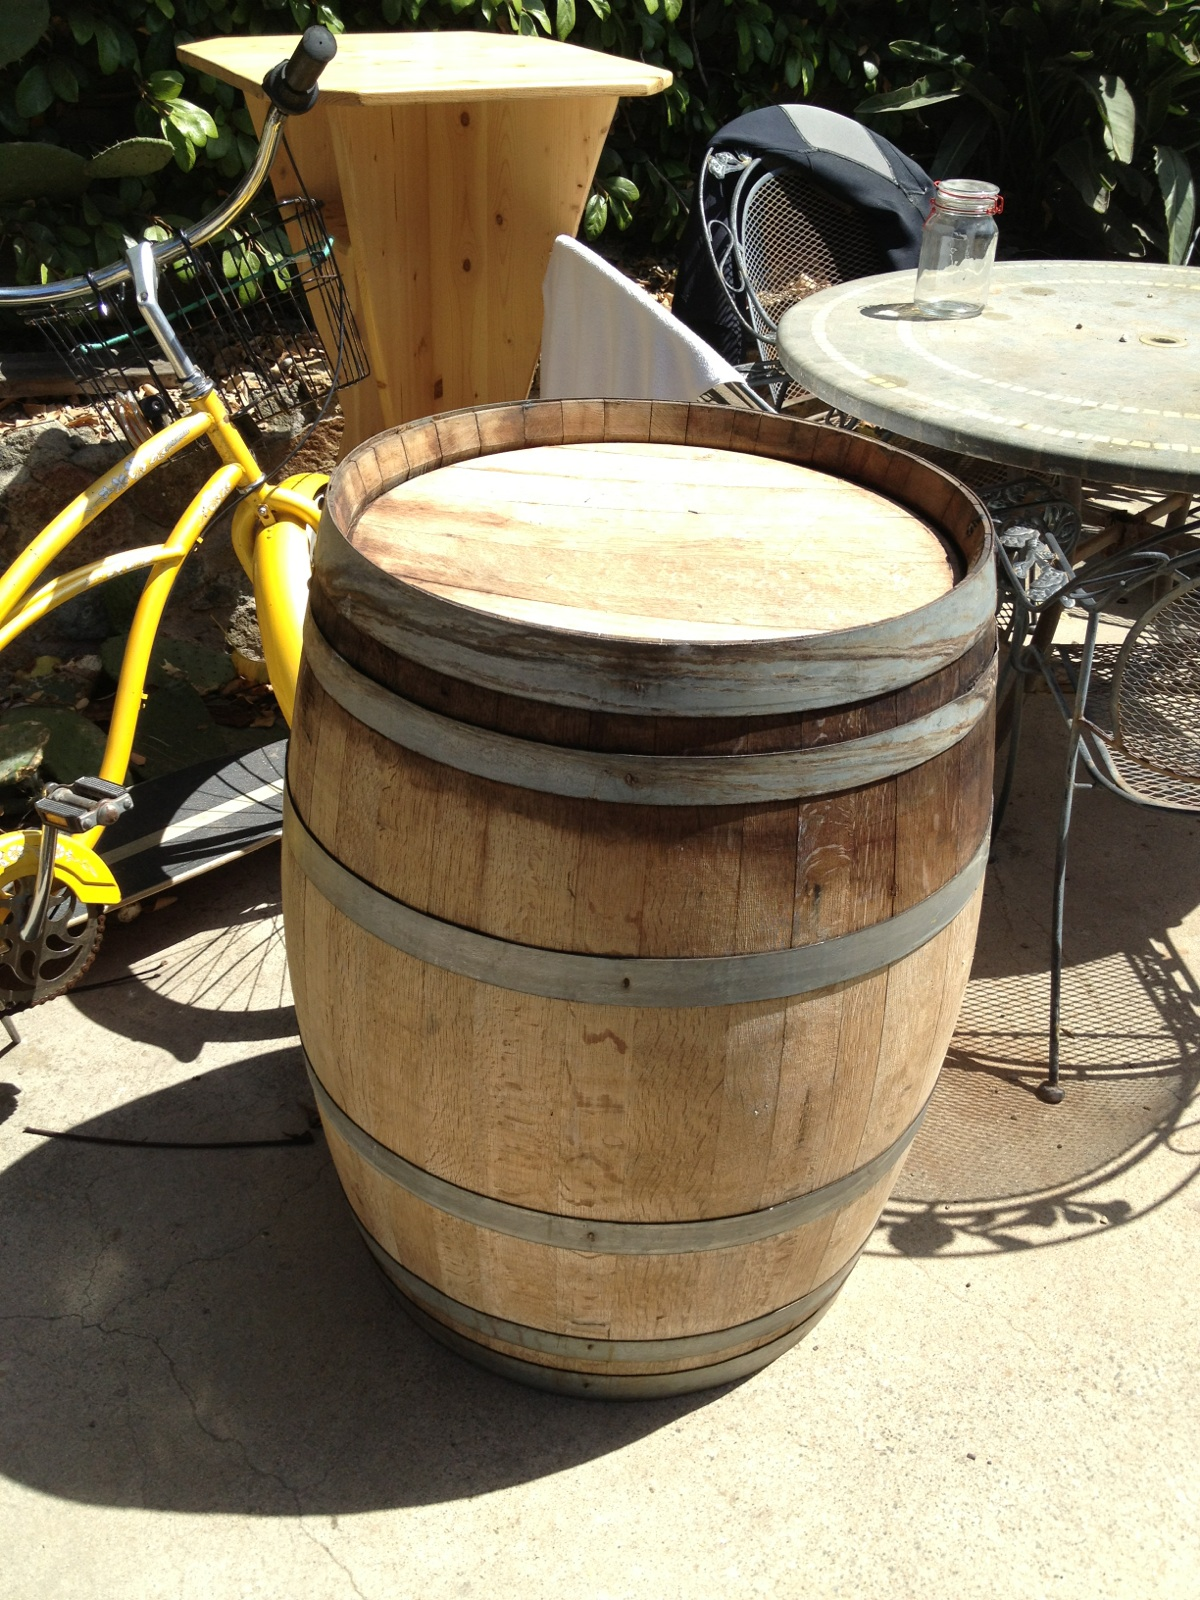 Whiskey Barrel planter project